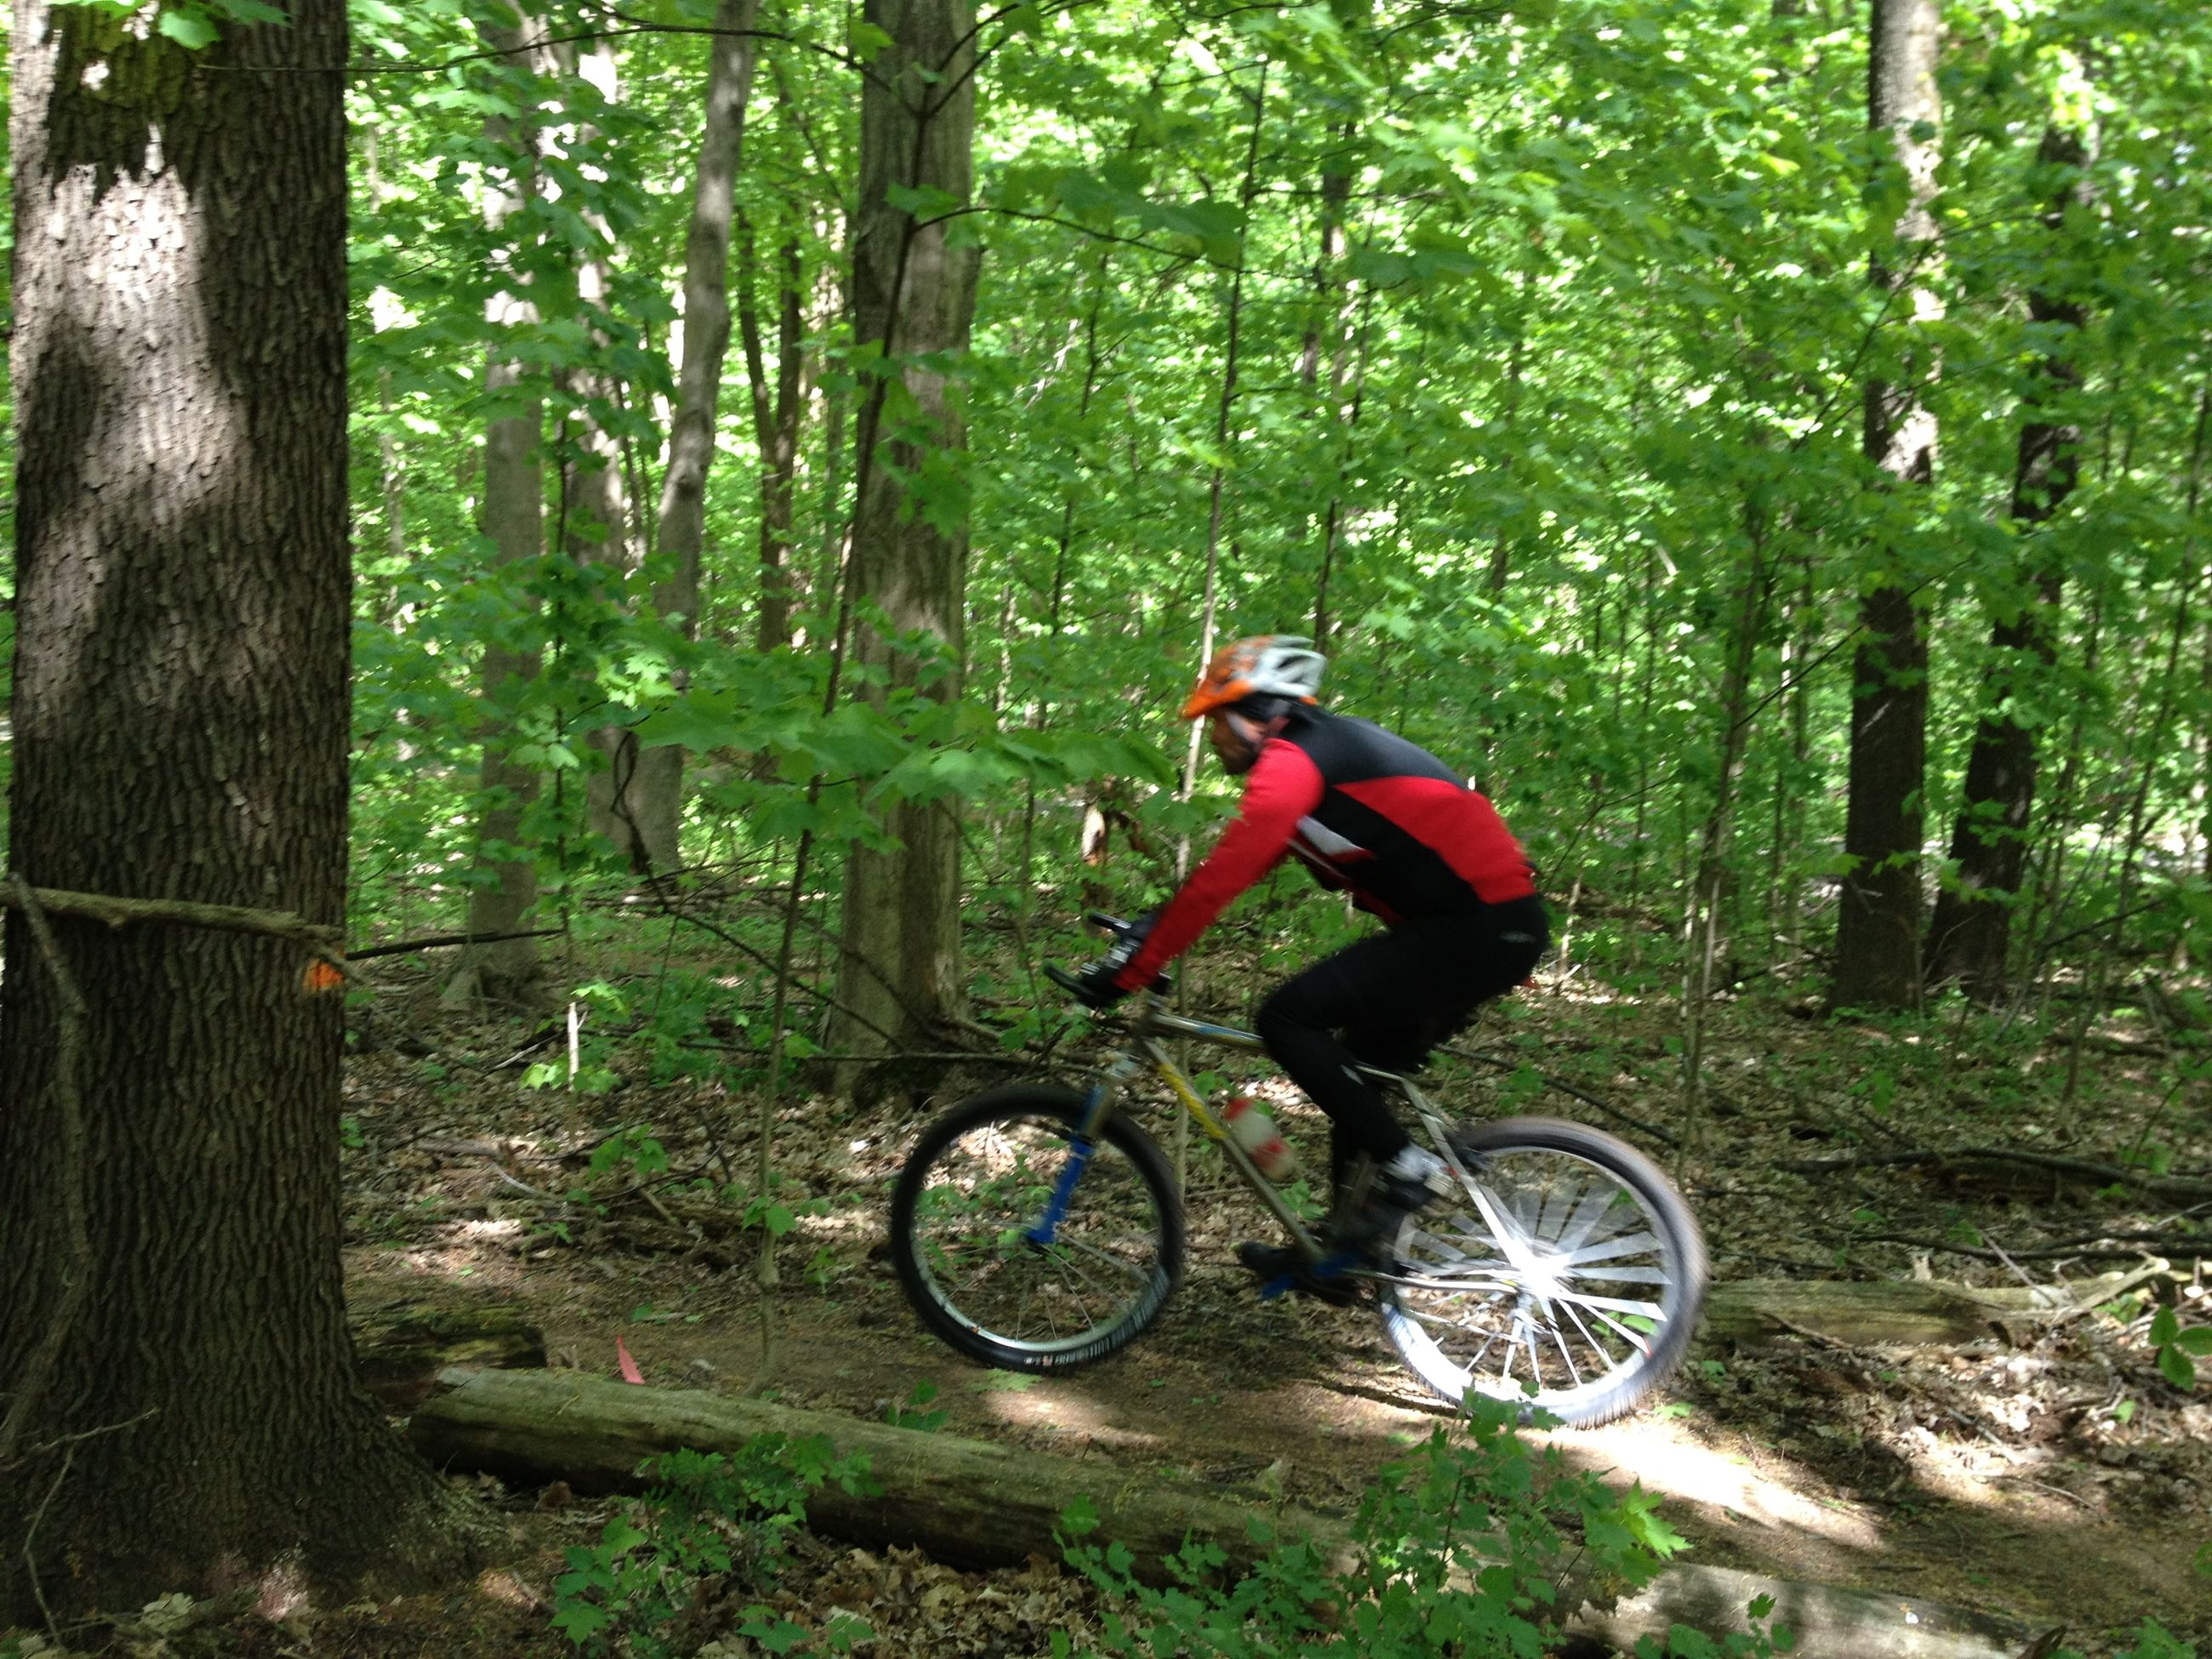 Bikerider on the Bendix Woods mountain bike trail